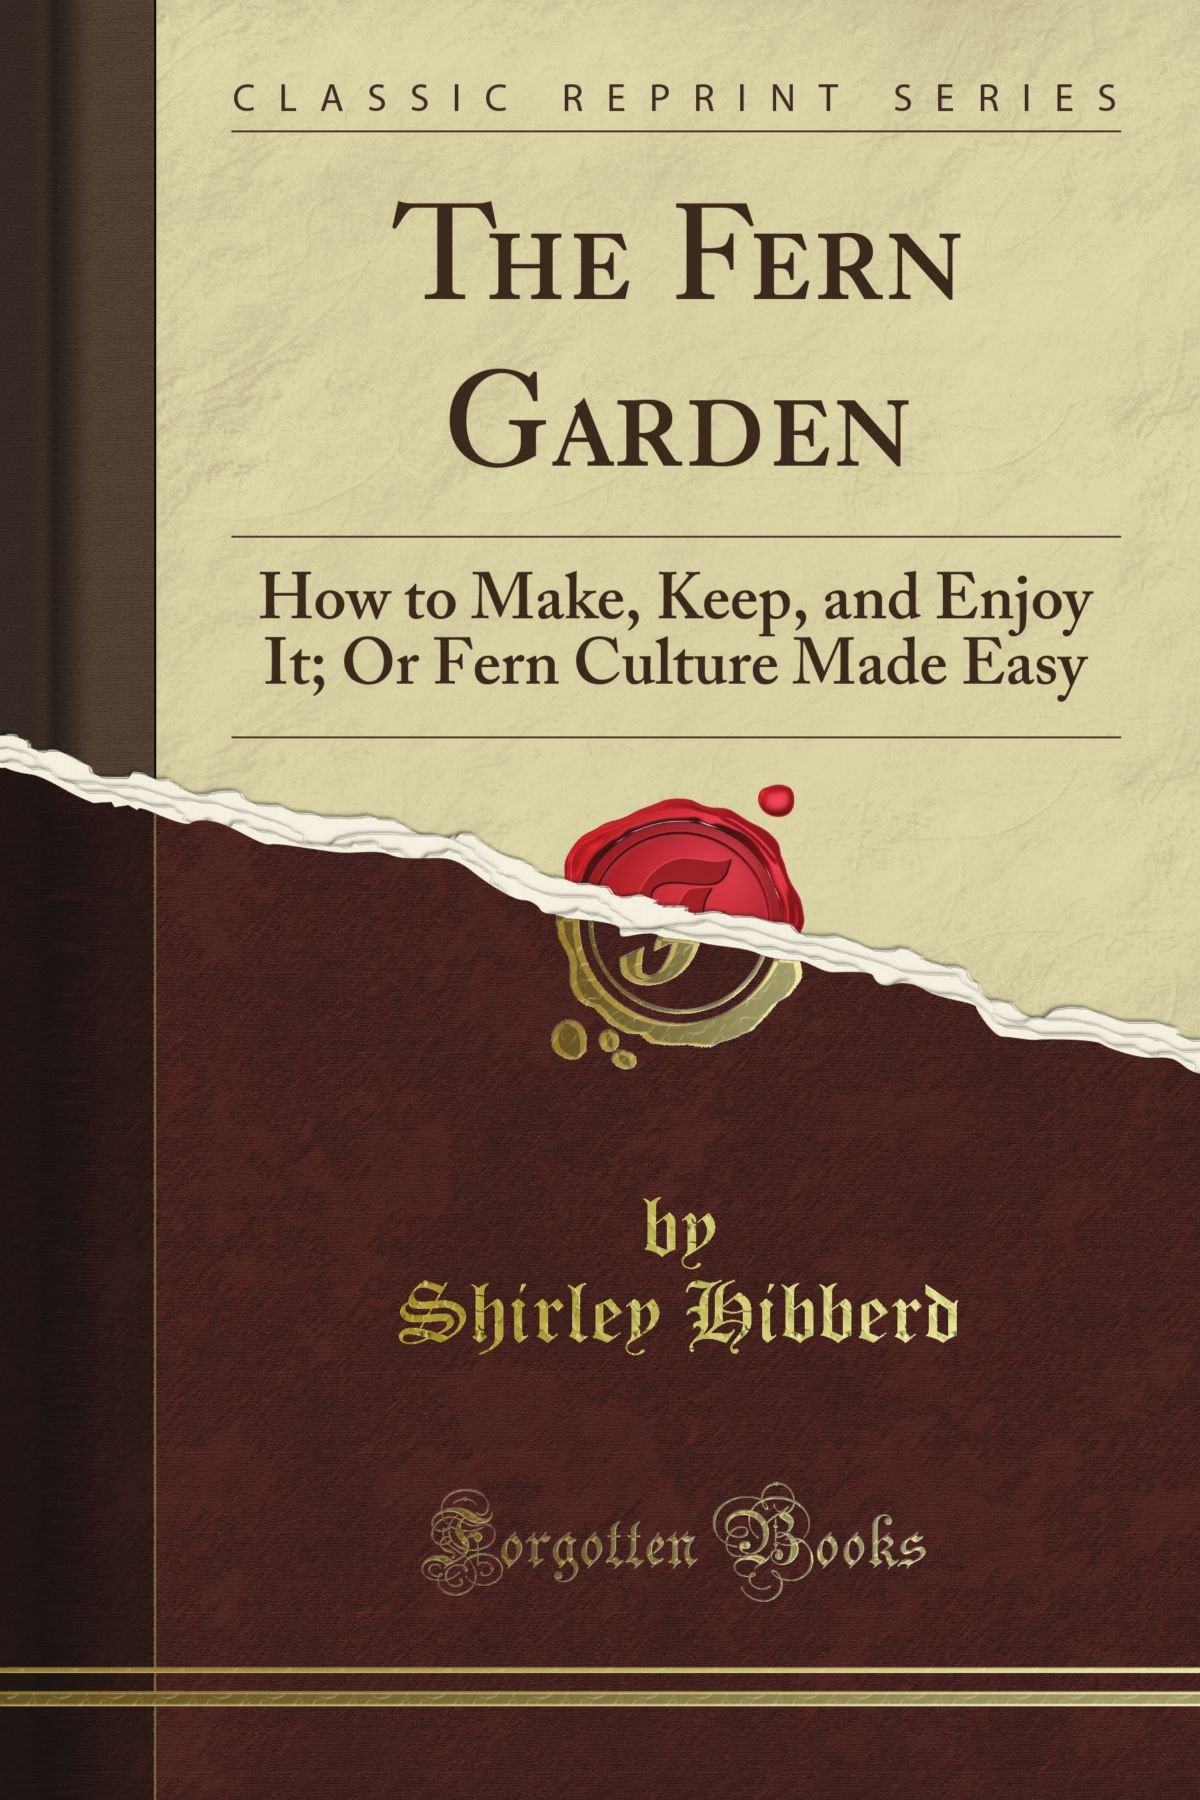 The Fern Garden: How to Make, Keep, and Enjoy It; Or Fern Culture Made Easy (Classic Reprint)